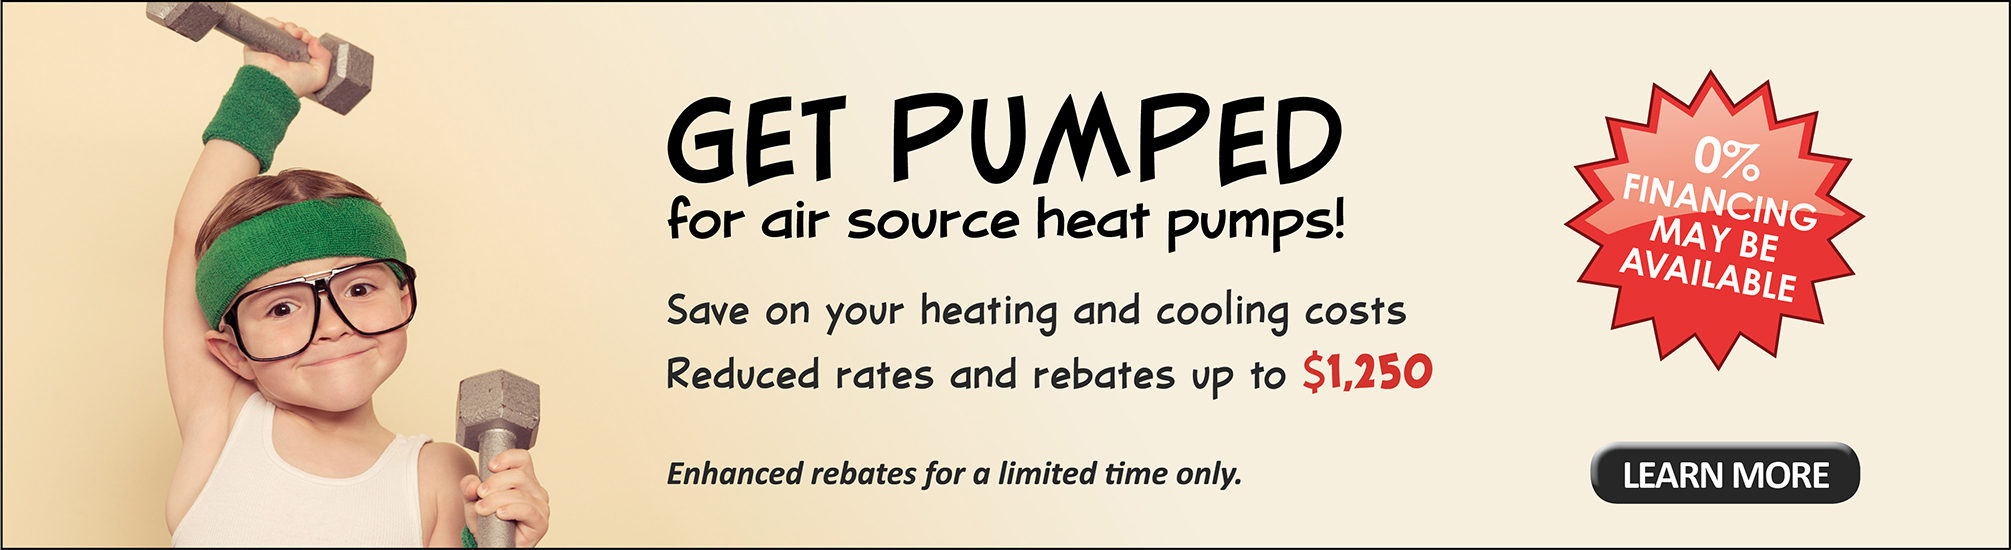 Get pumped for air source heat pumps